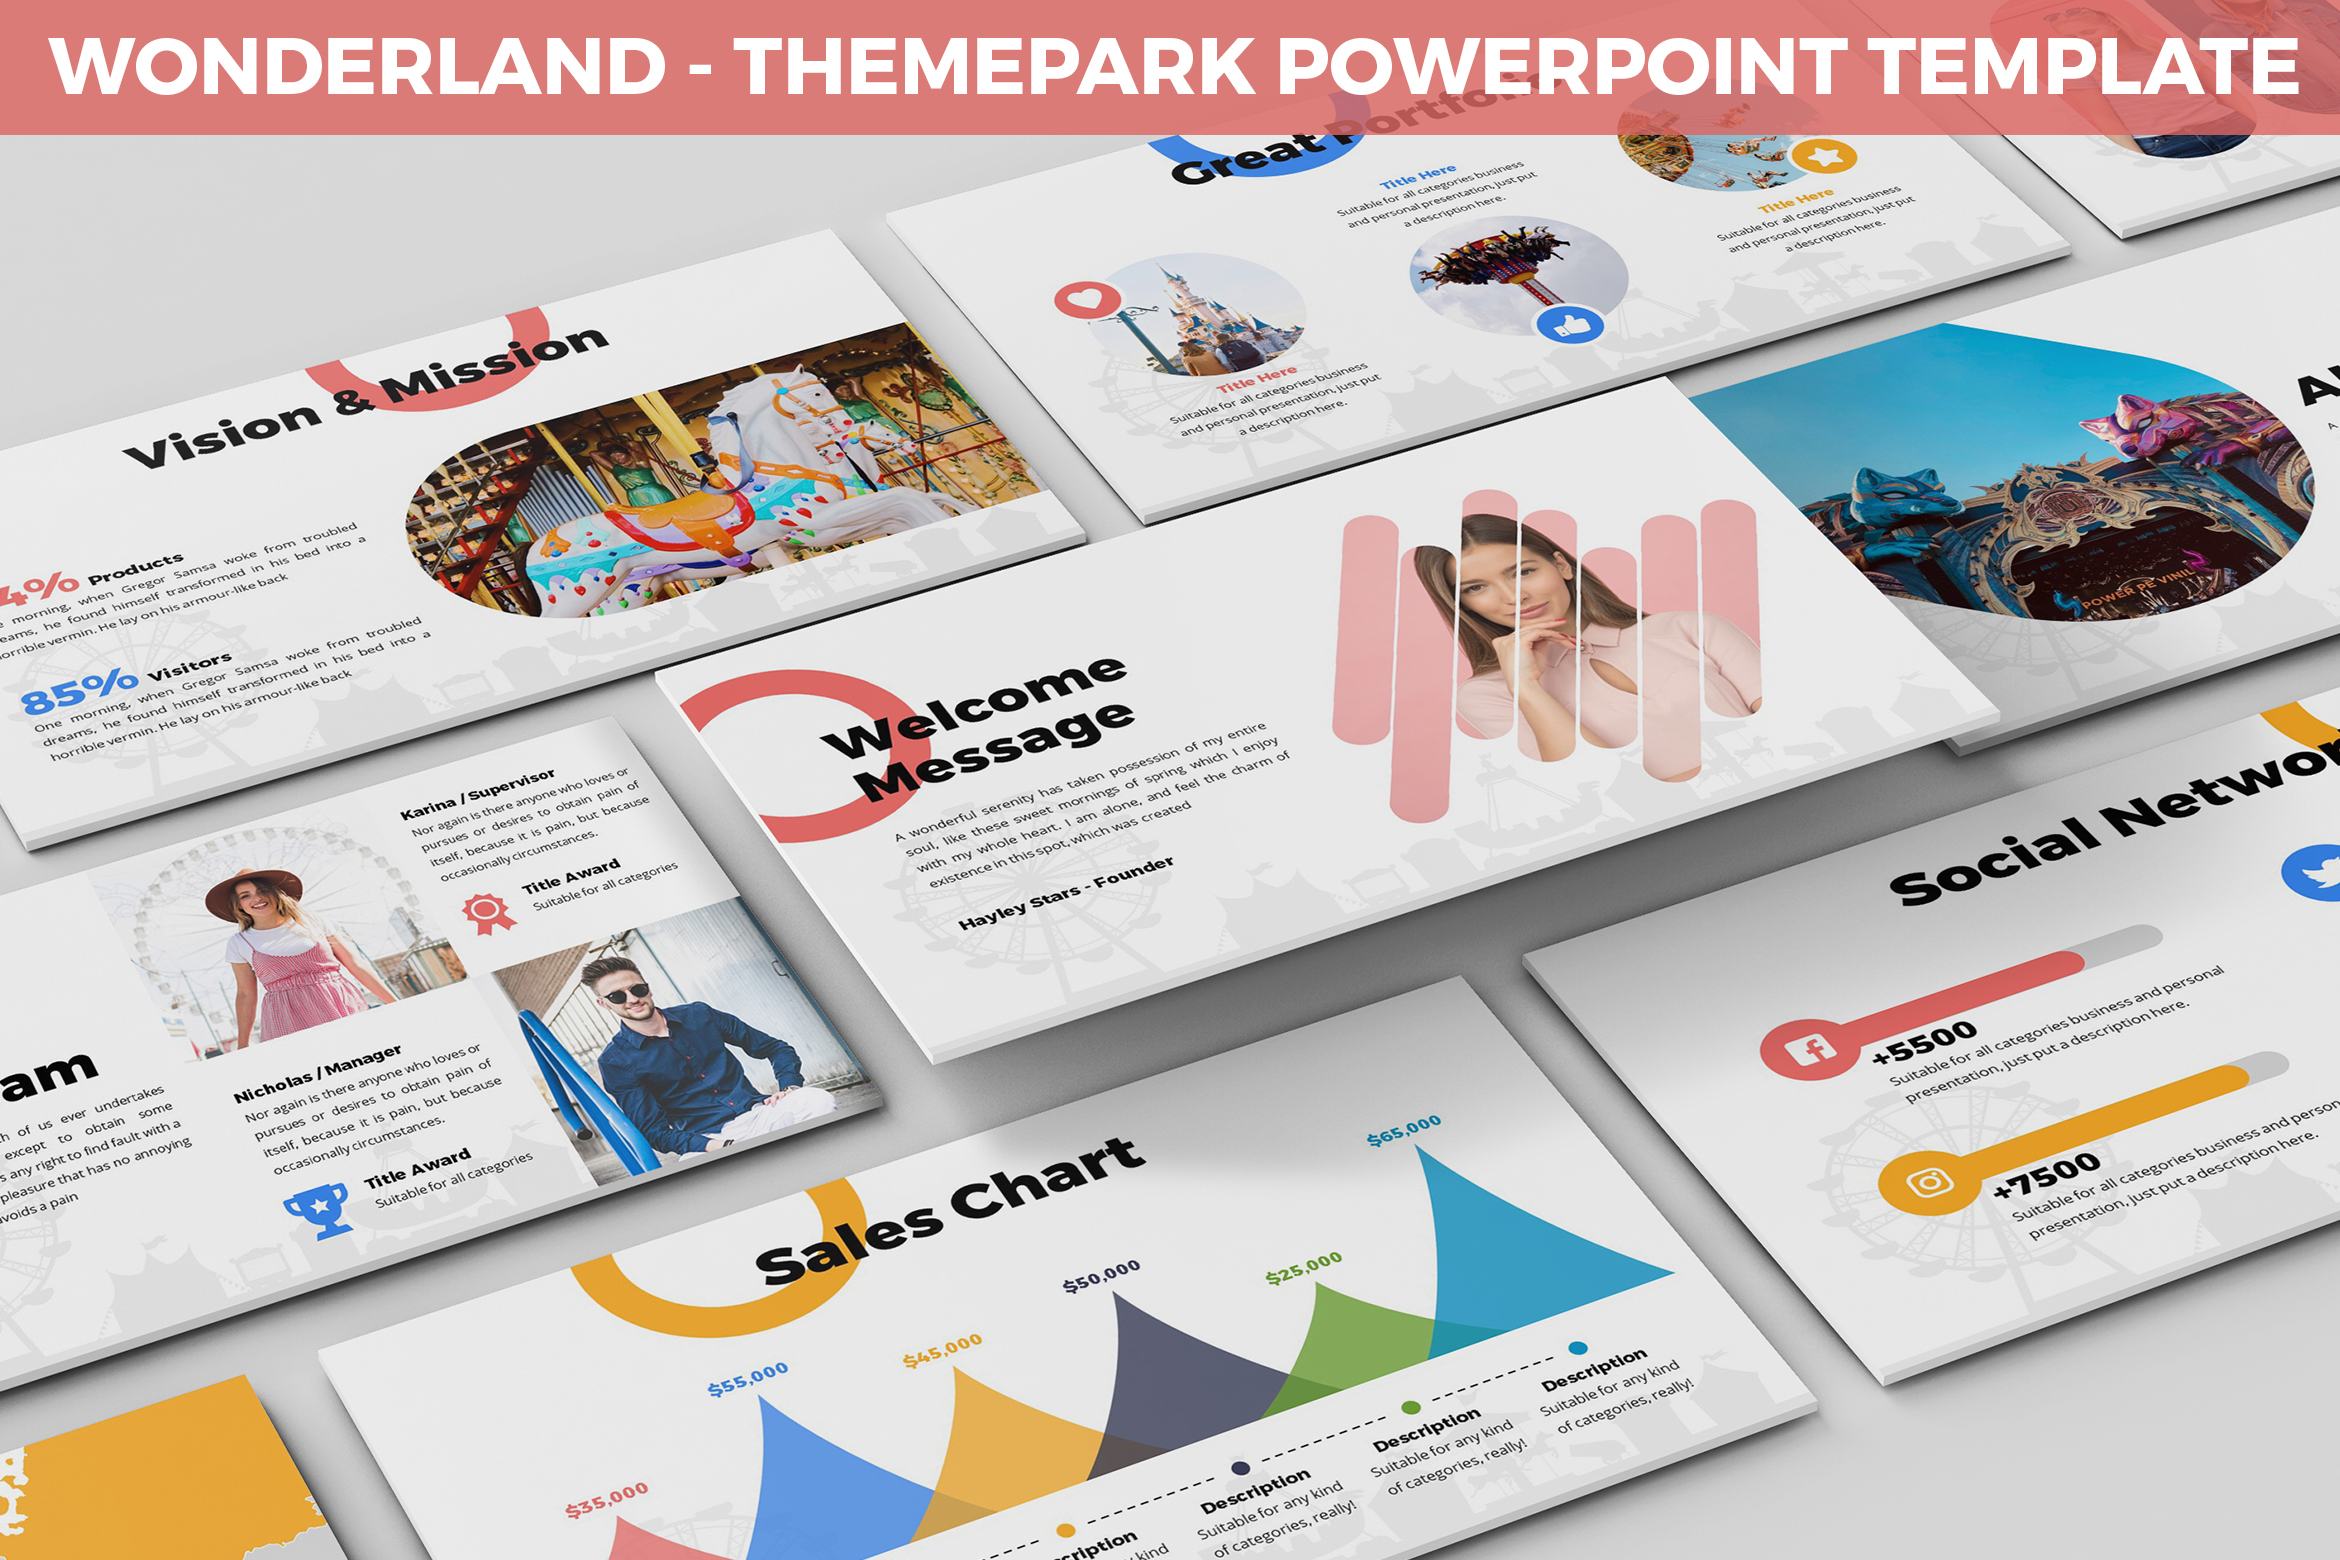 Wonderland - Theme Park Powerpoint Template example image 1